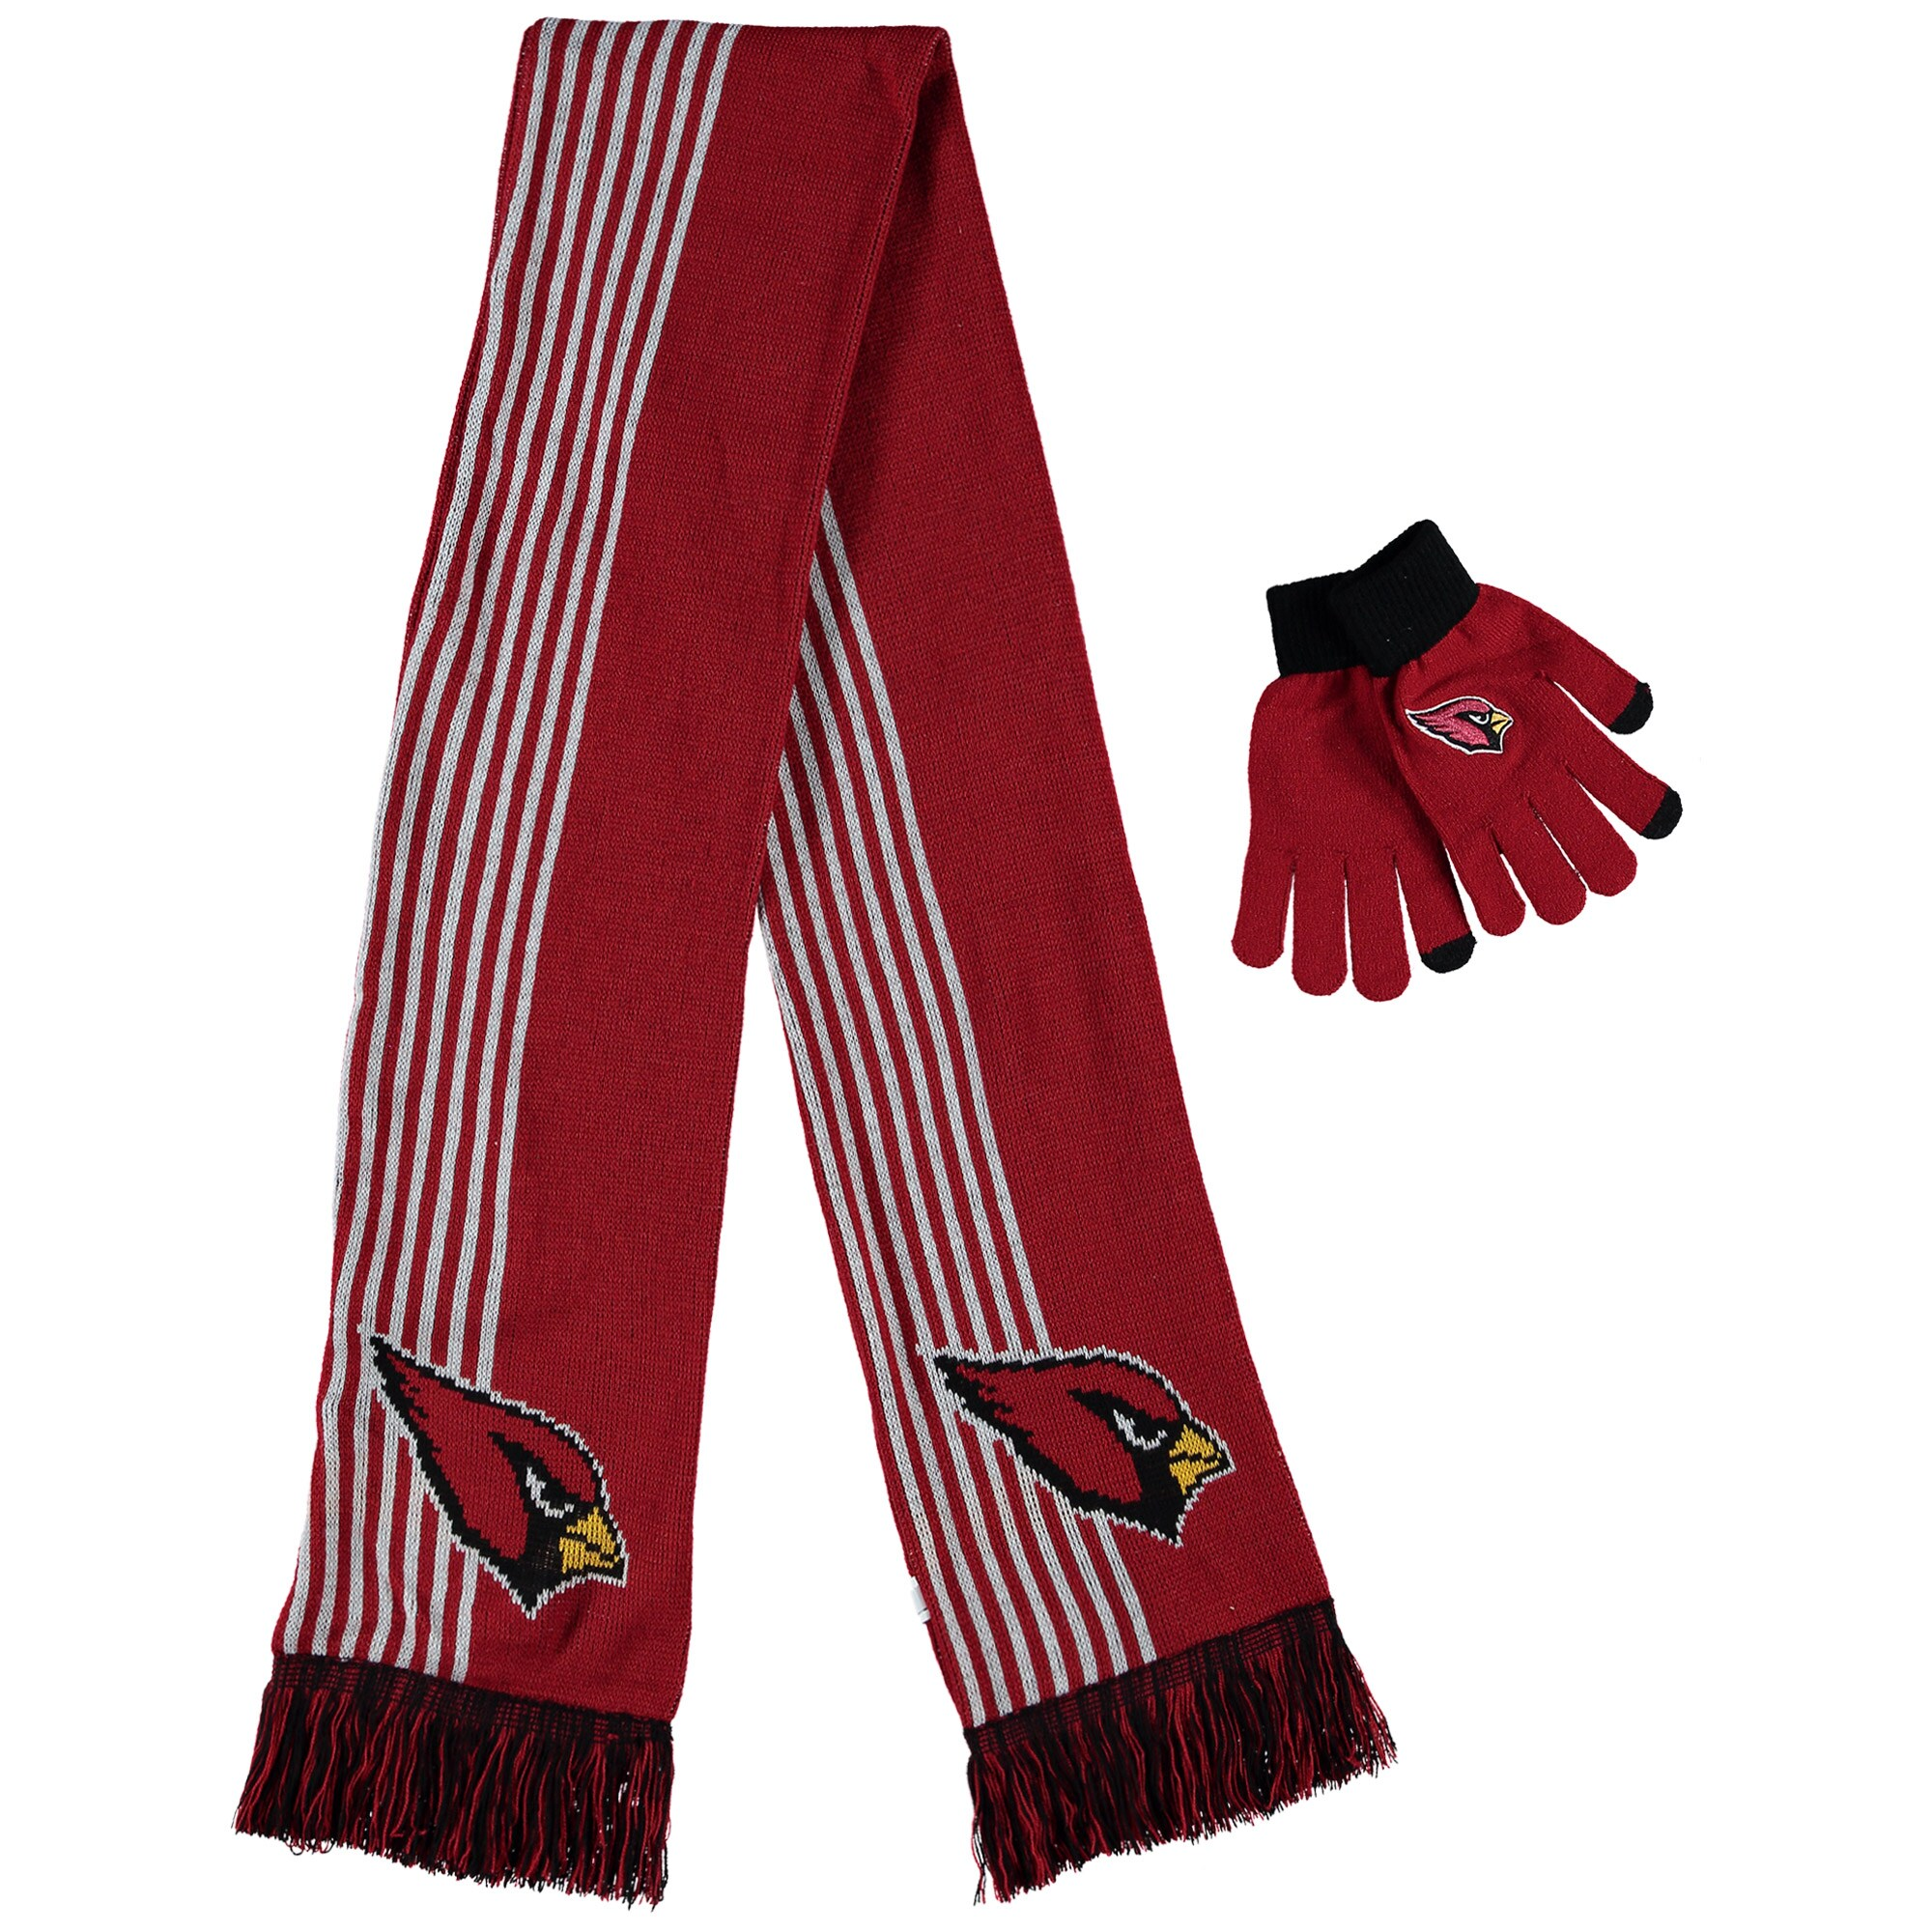 Arizona Cardinals Women's Gloves & Scarf Set - Cardinal